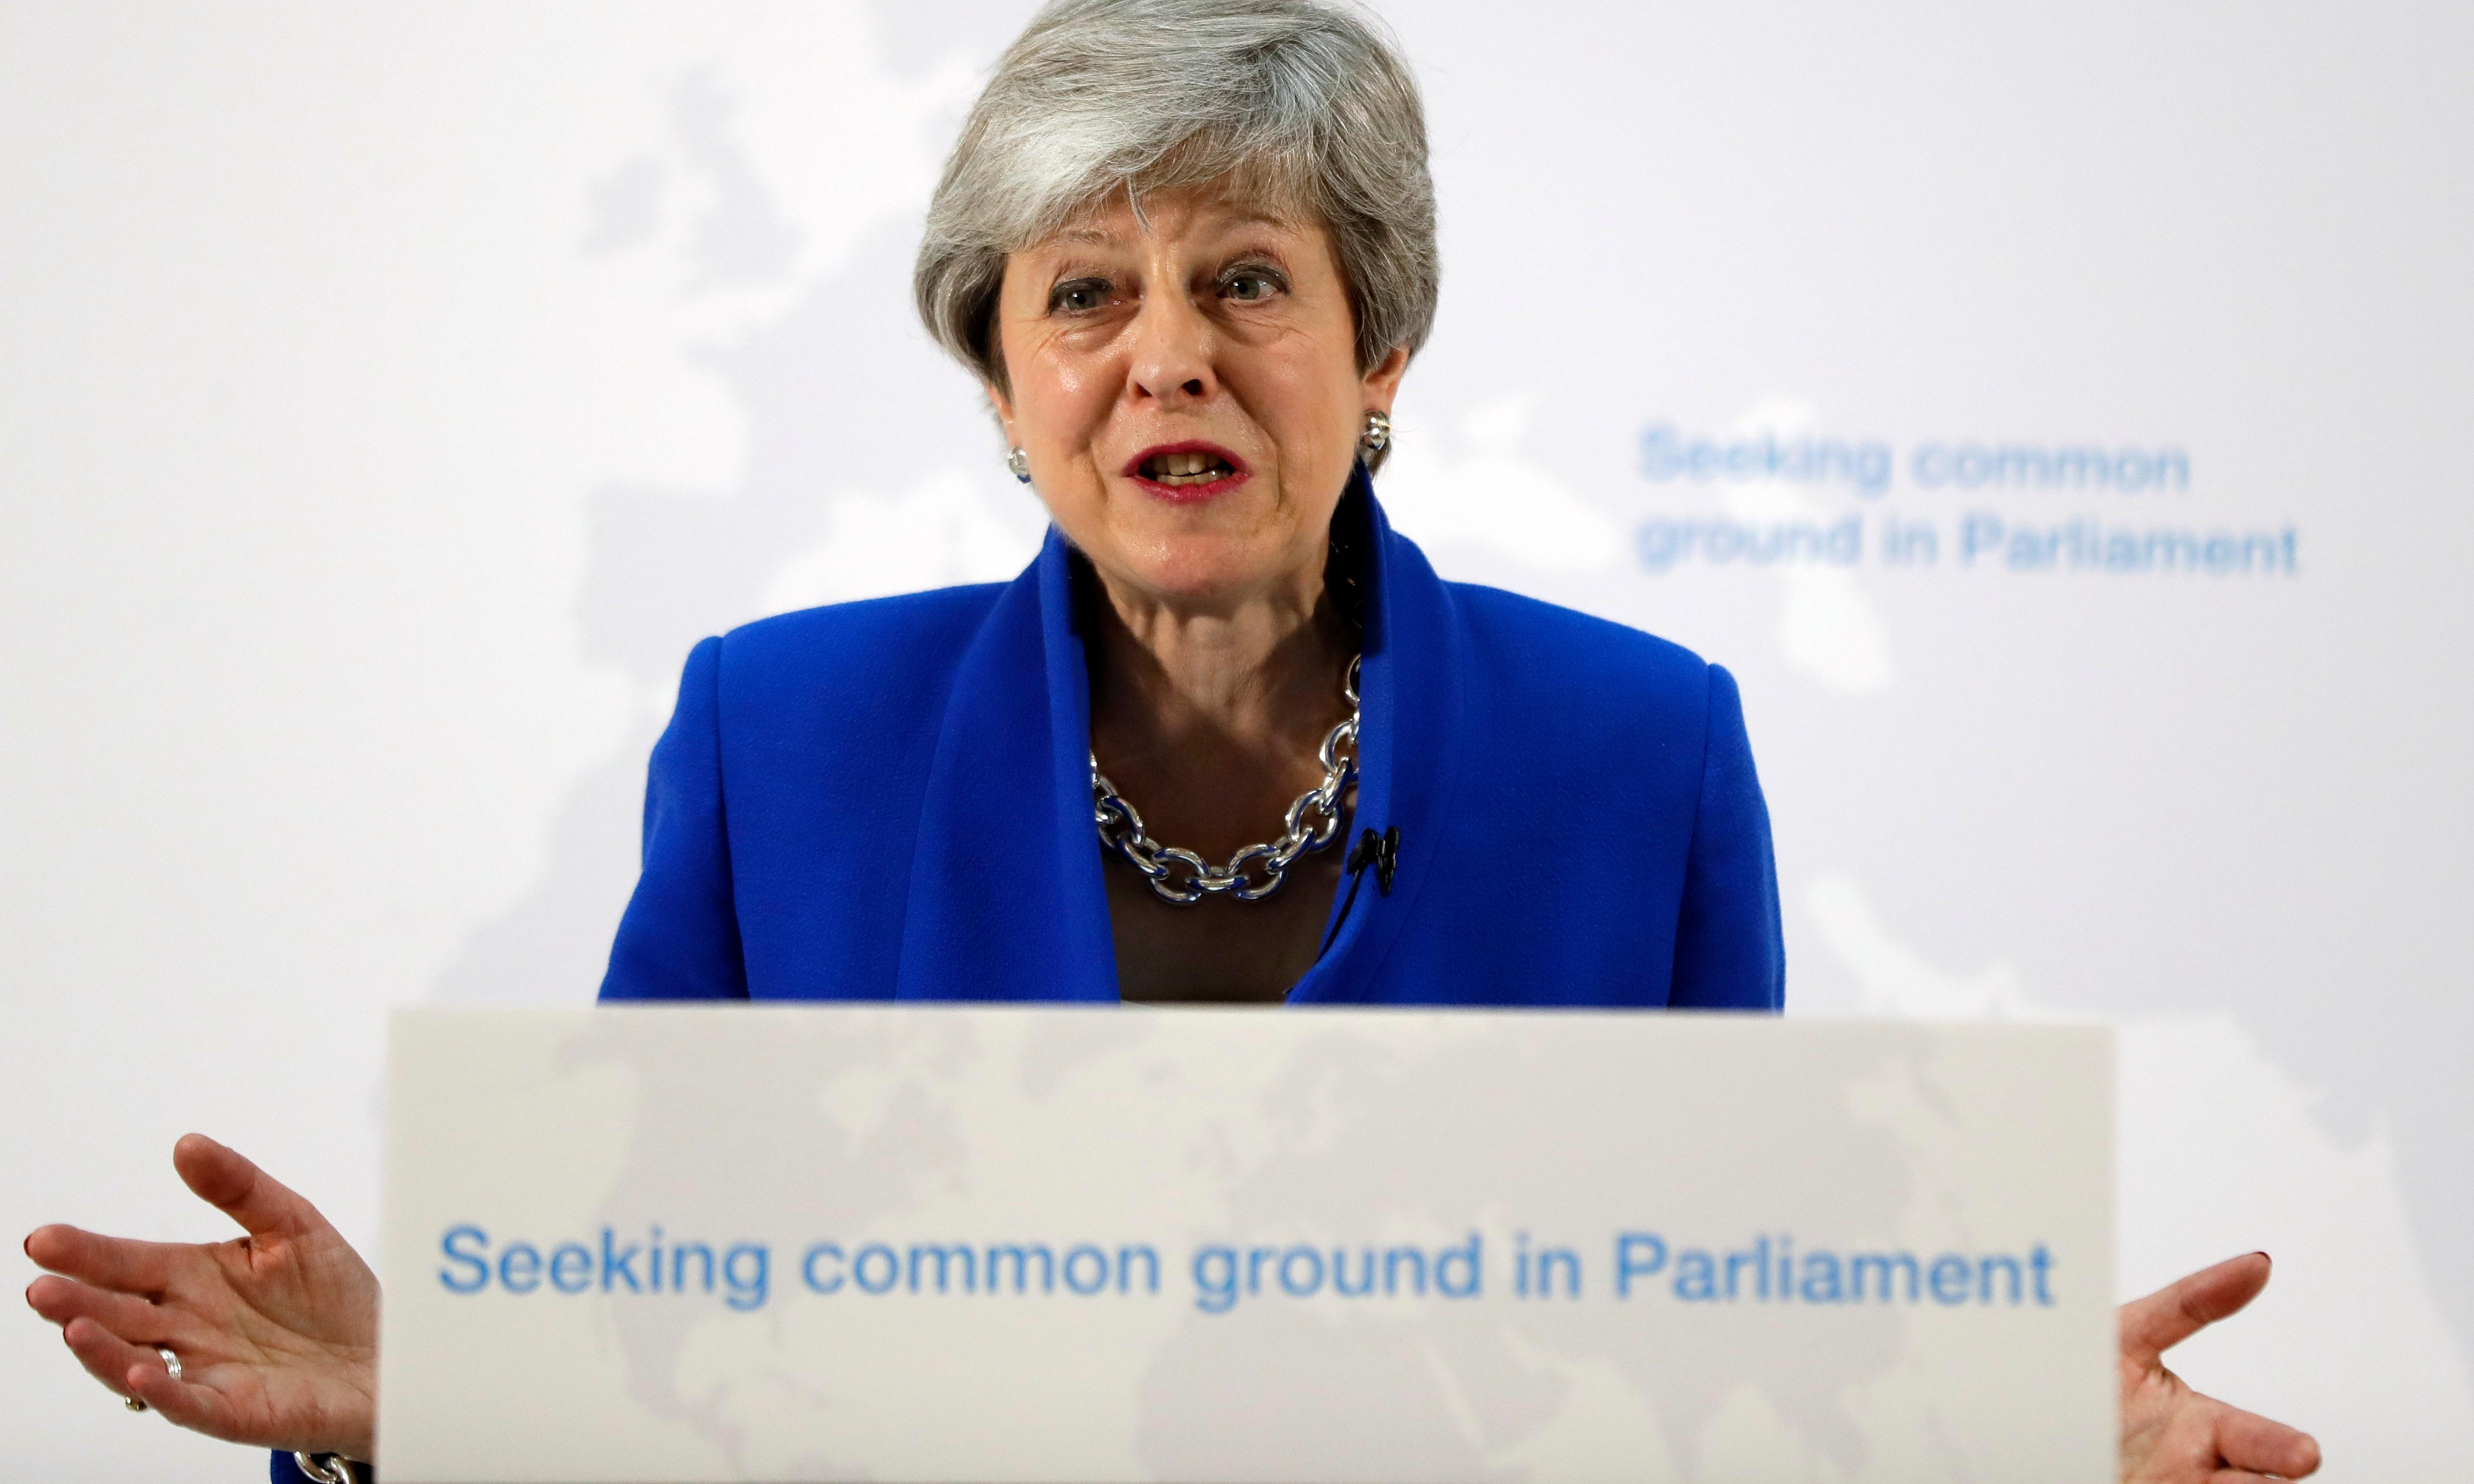 The Guardian view on Theresa May's final act: nowhere left to fail